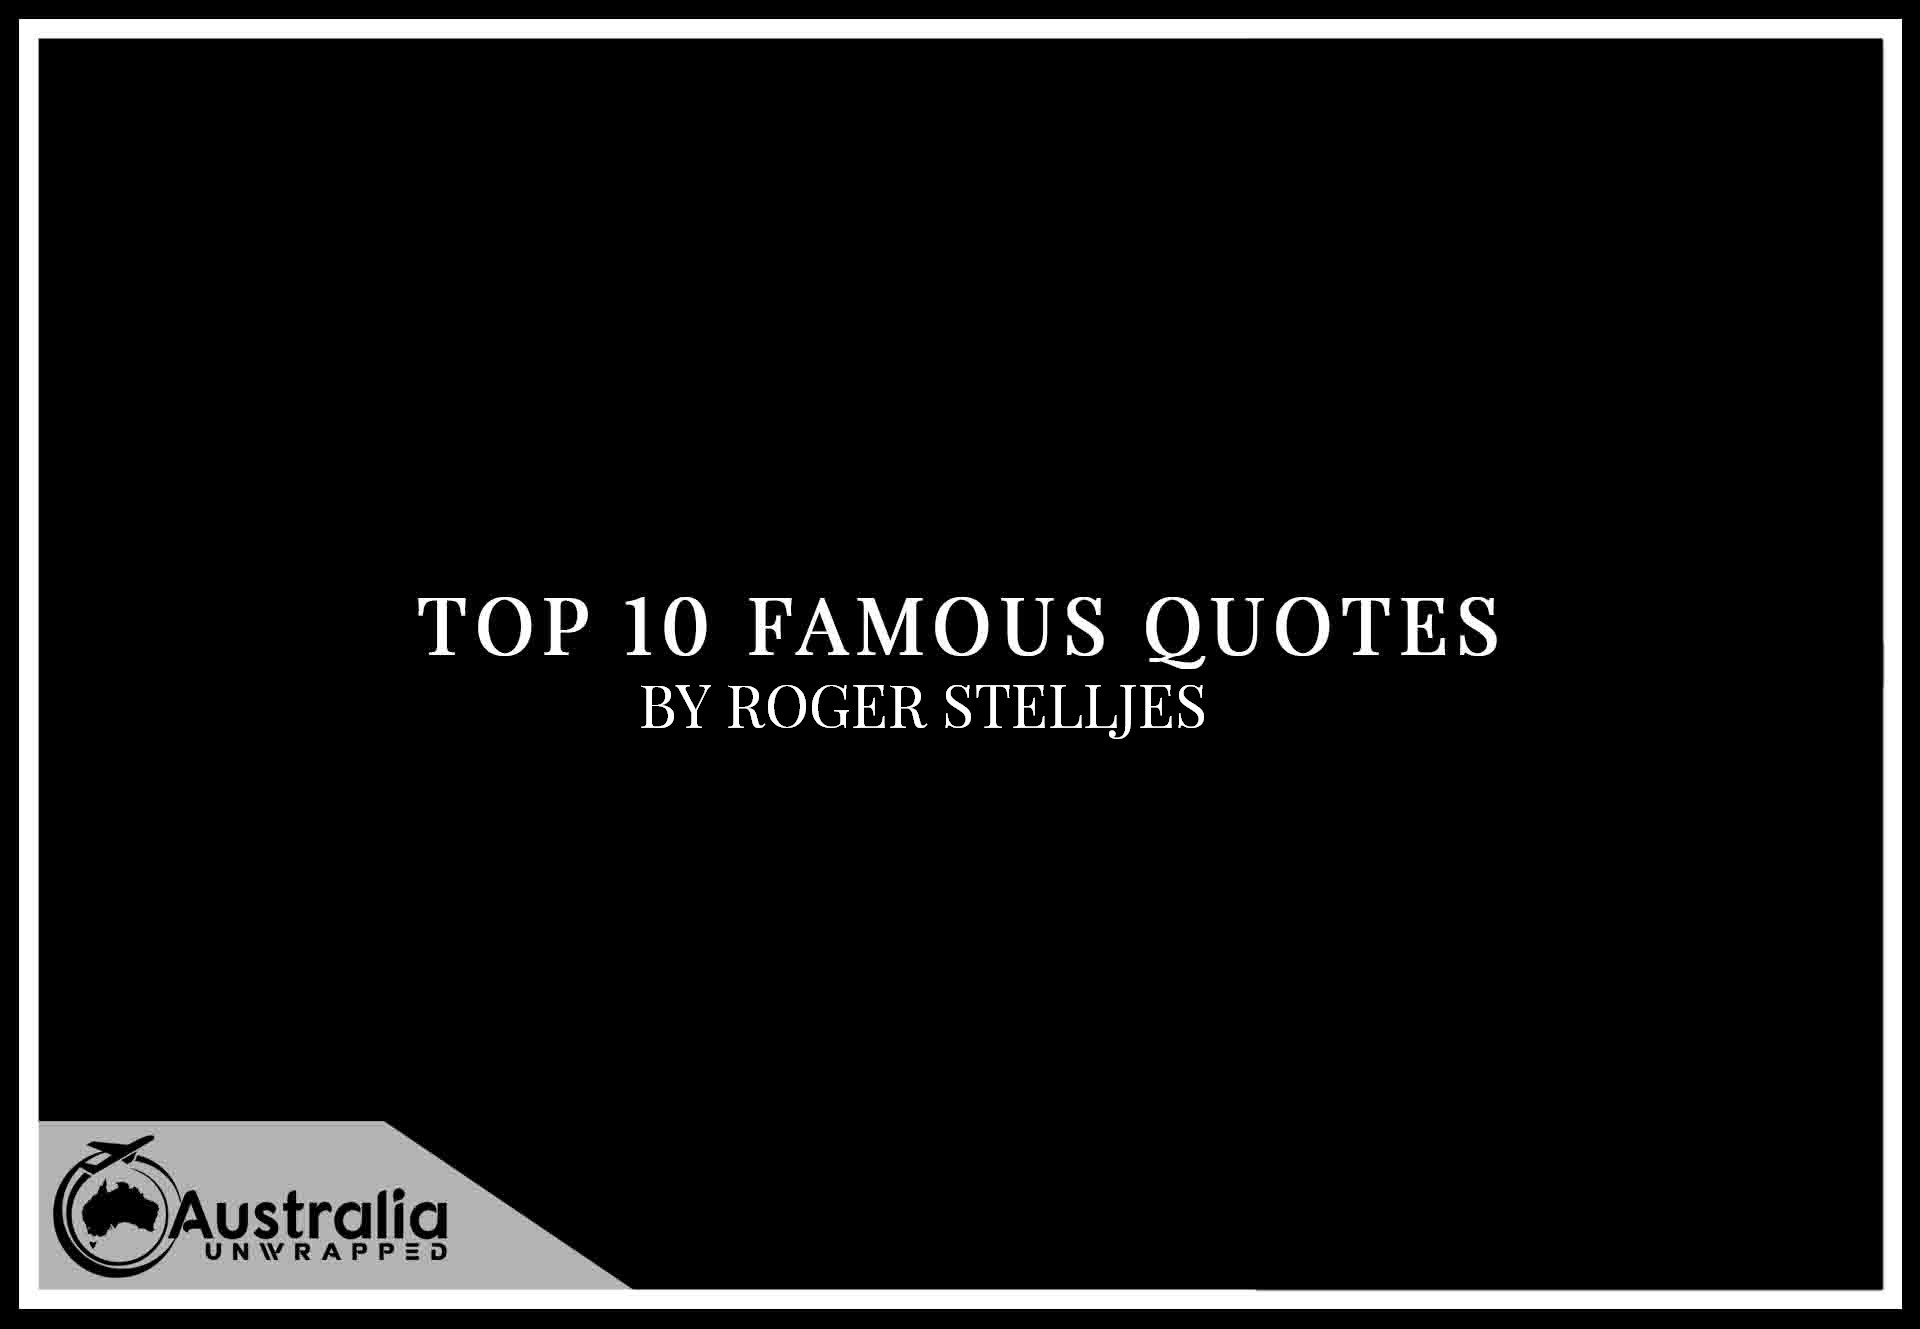 Top 10 Famous Quotes by Author Roger Stelljes